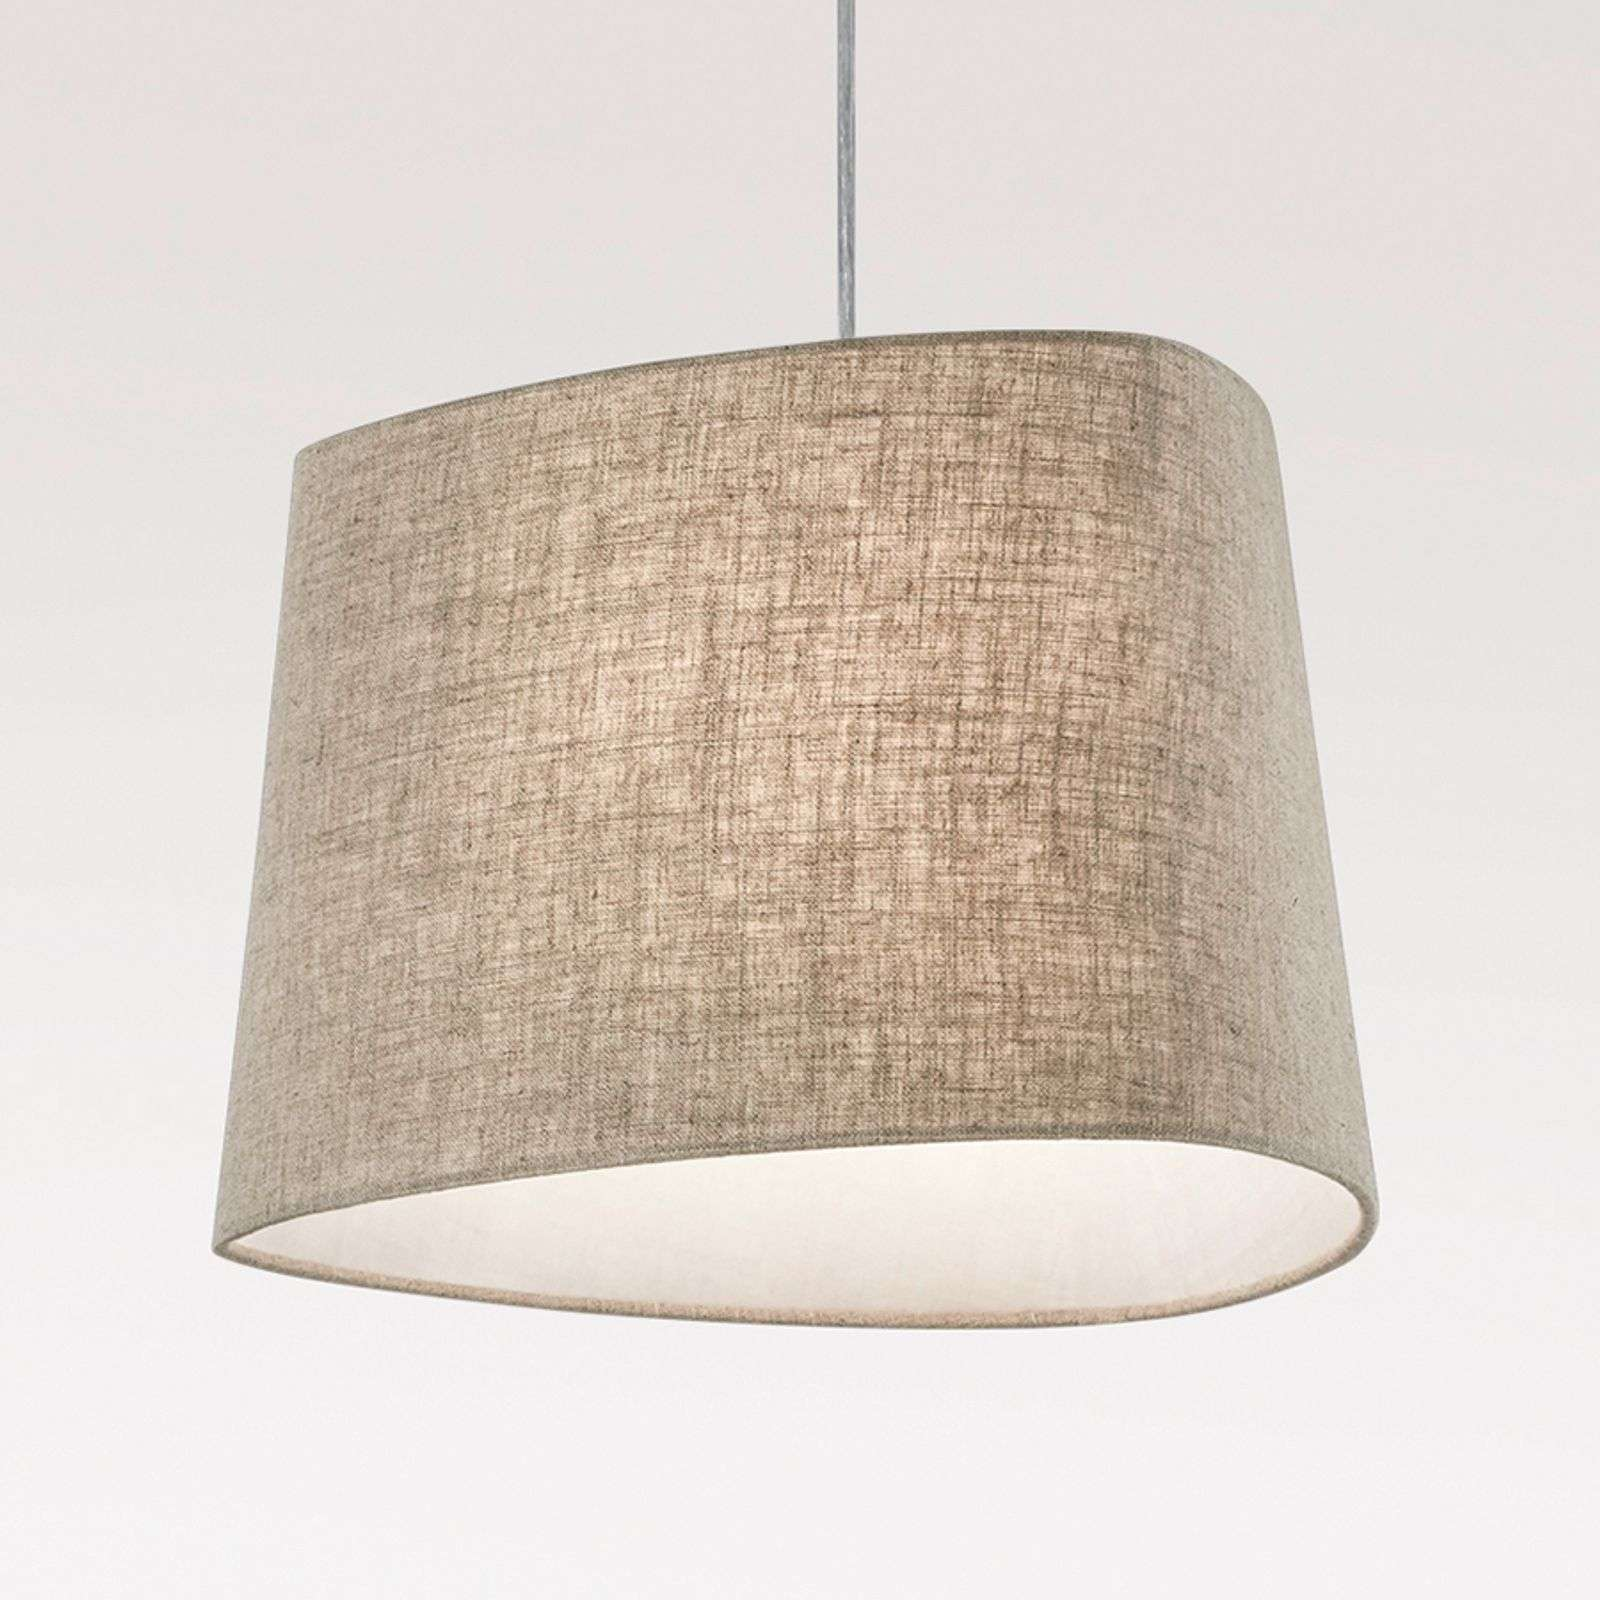 Suspension textile Crosby, brun clair